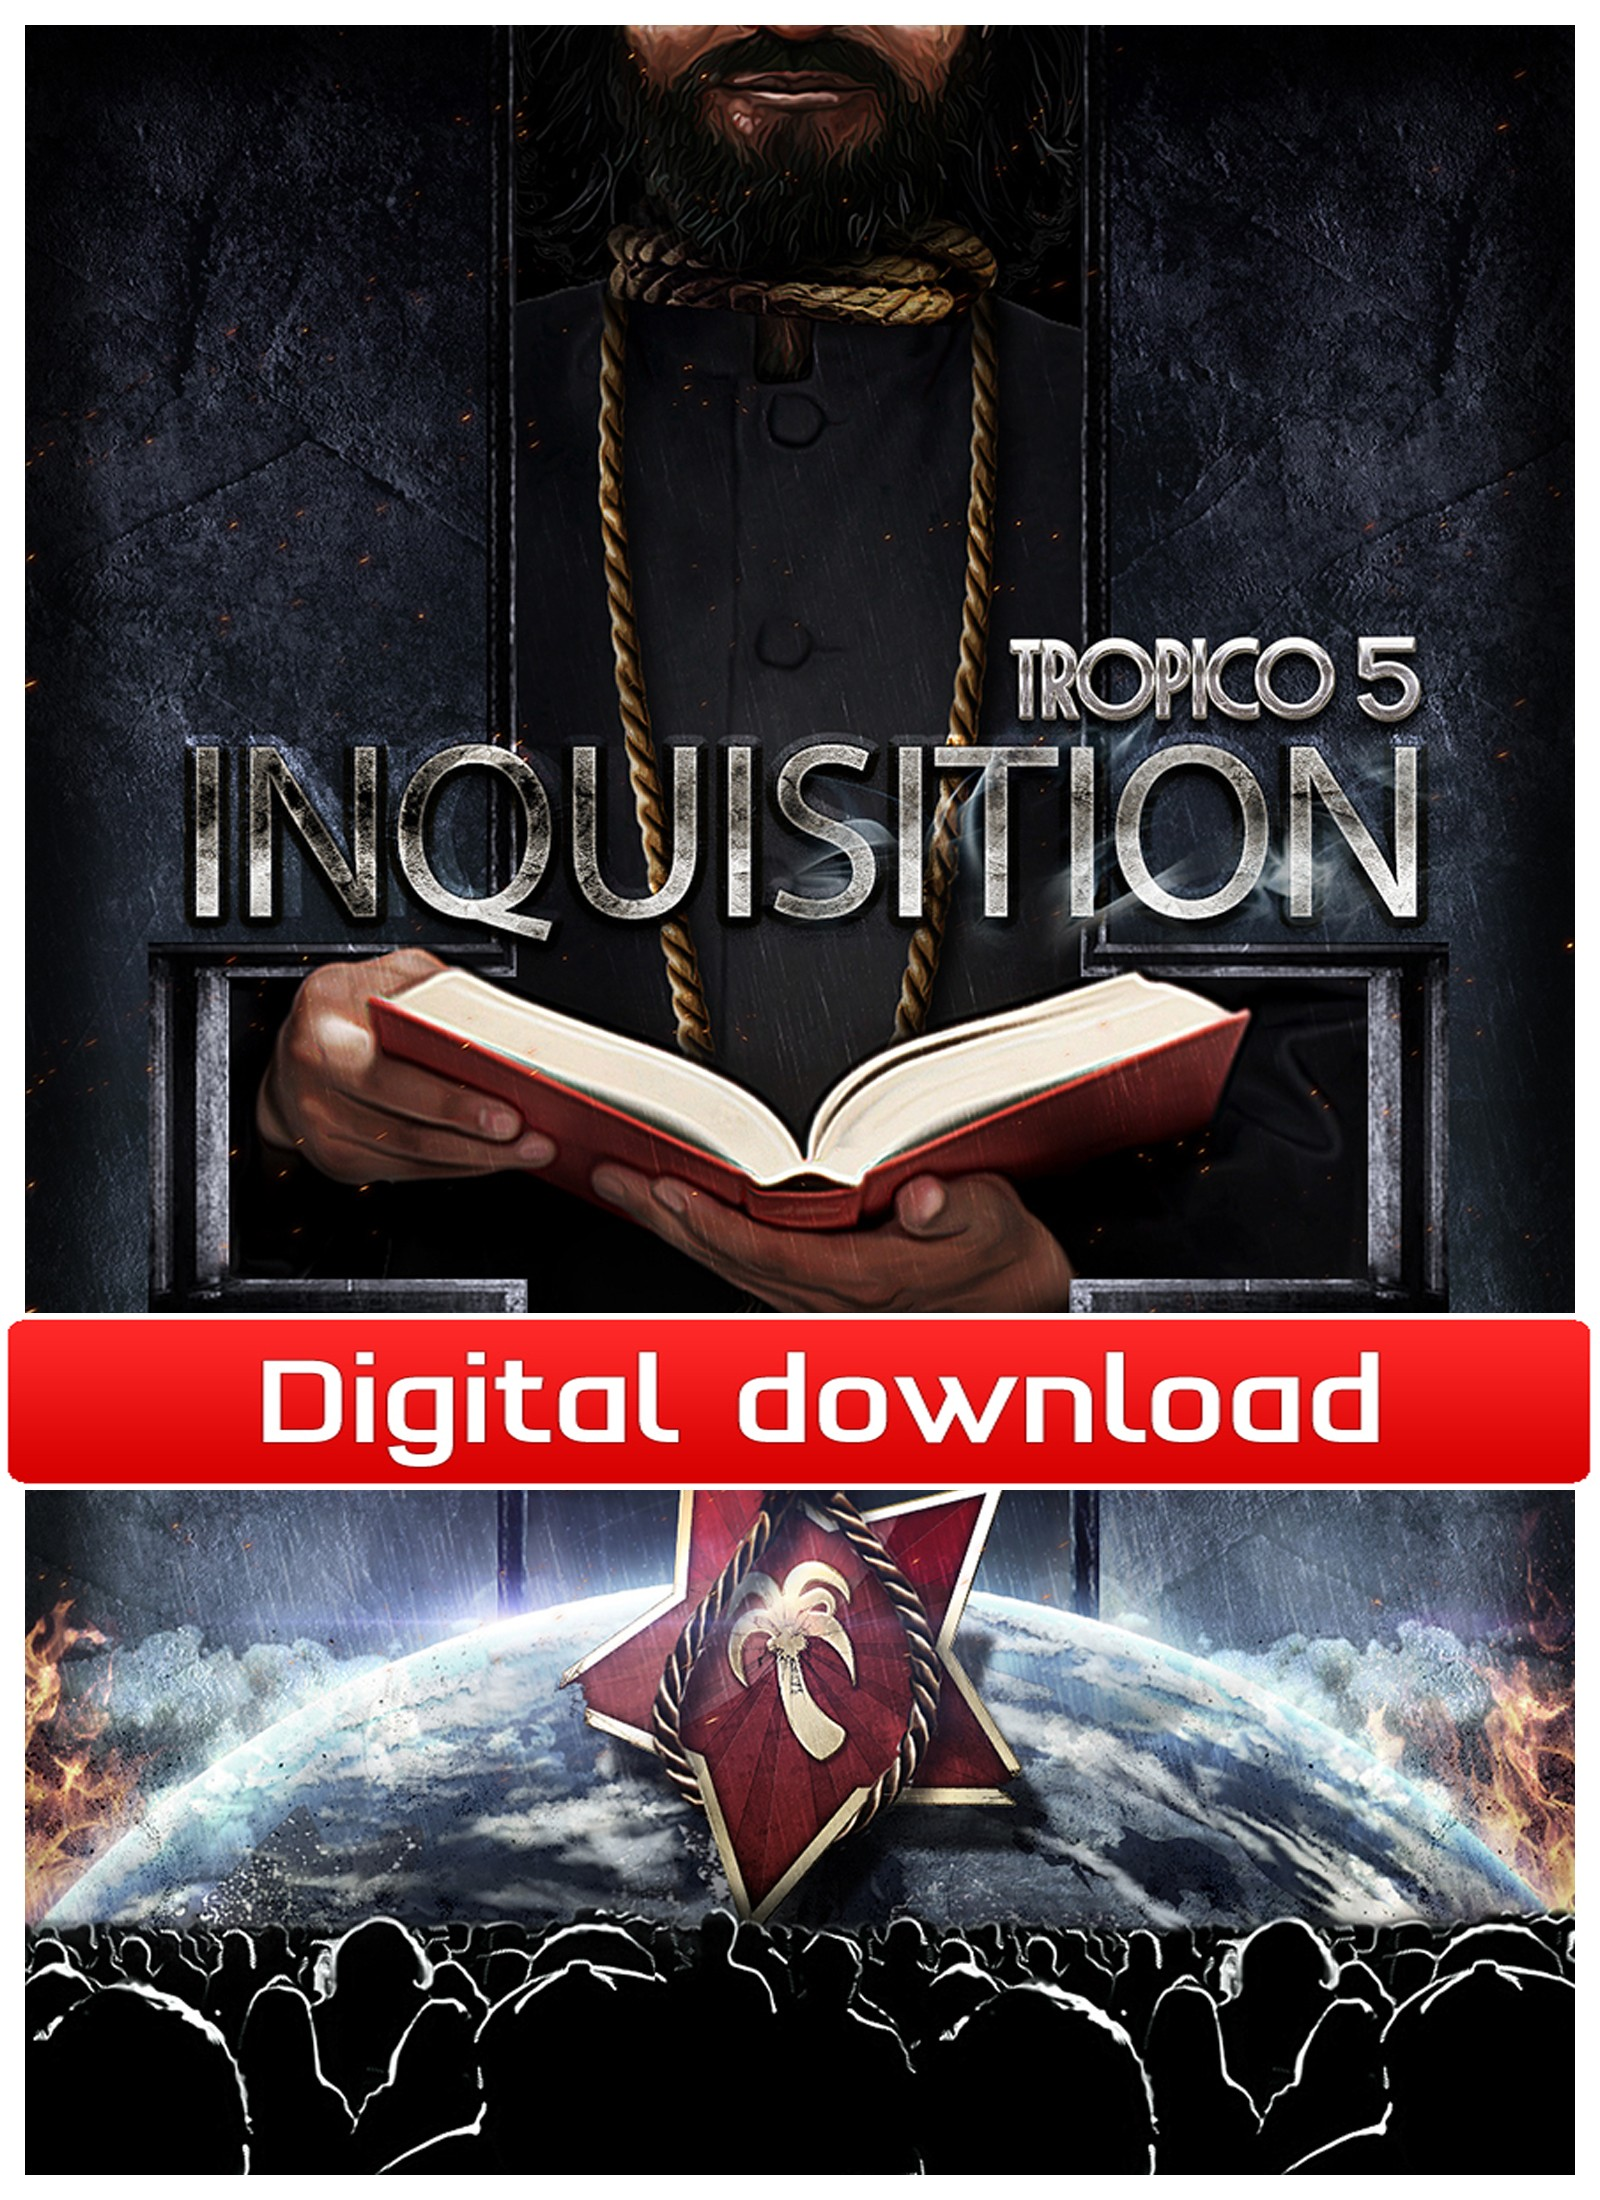 37016 : Tropico 5 - DLC Inquisition (PC nedlastning)